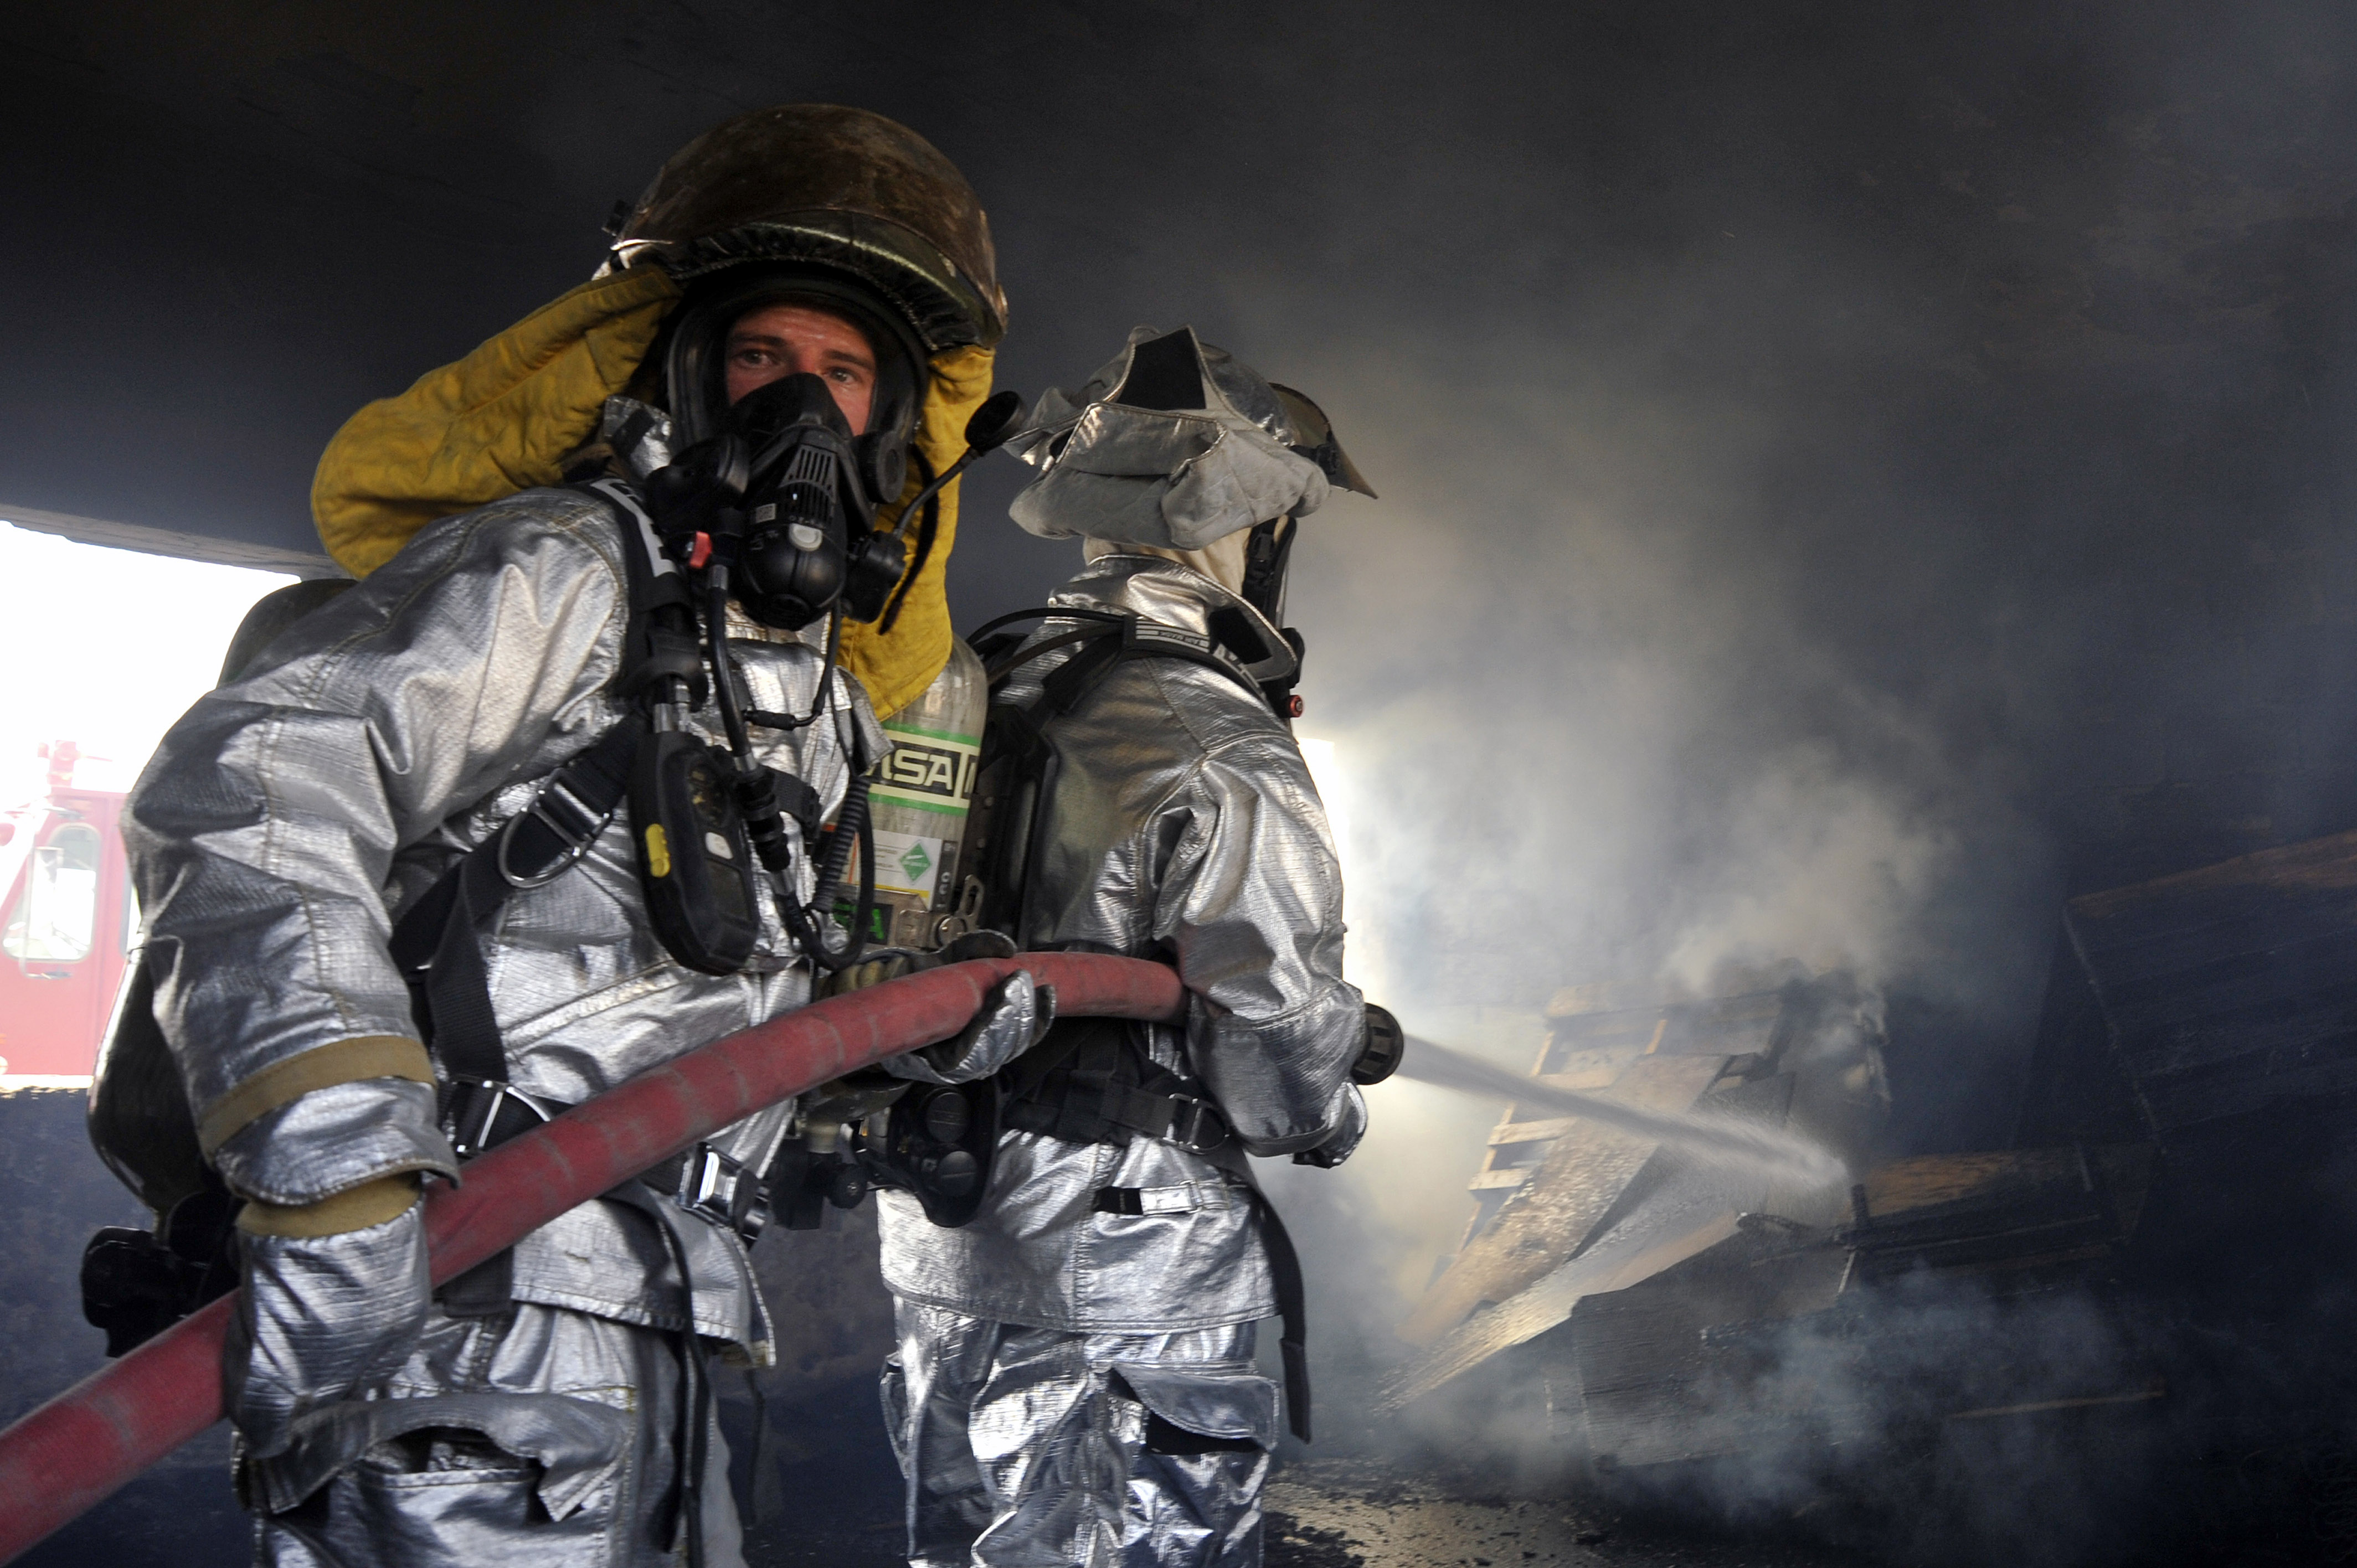 File:Defense.gov News Photo 100809-F-6188A-164 - Firefighters from the ...